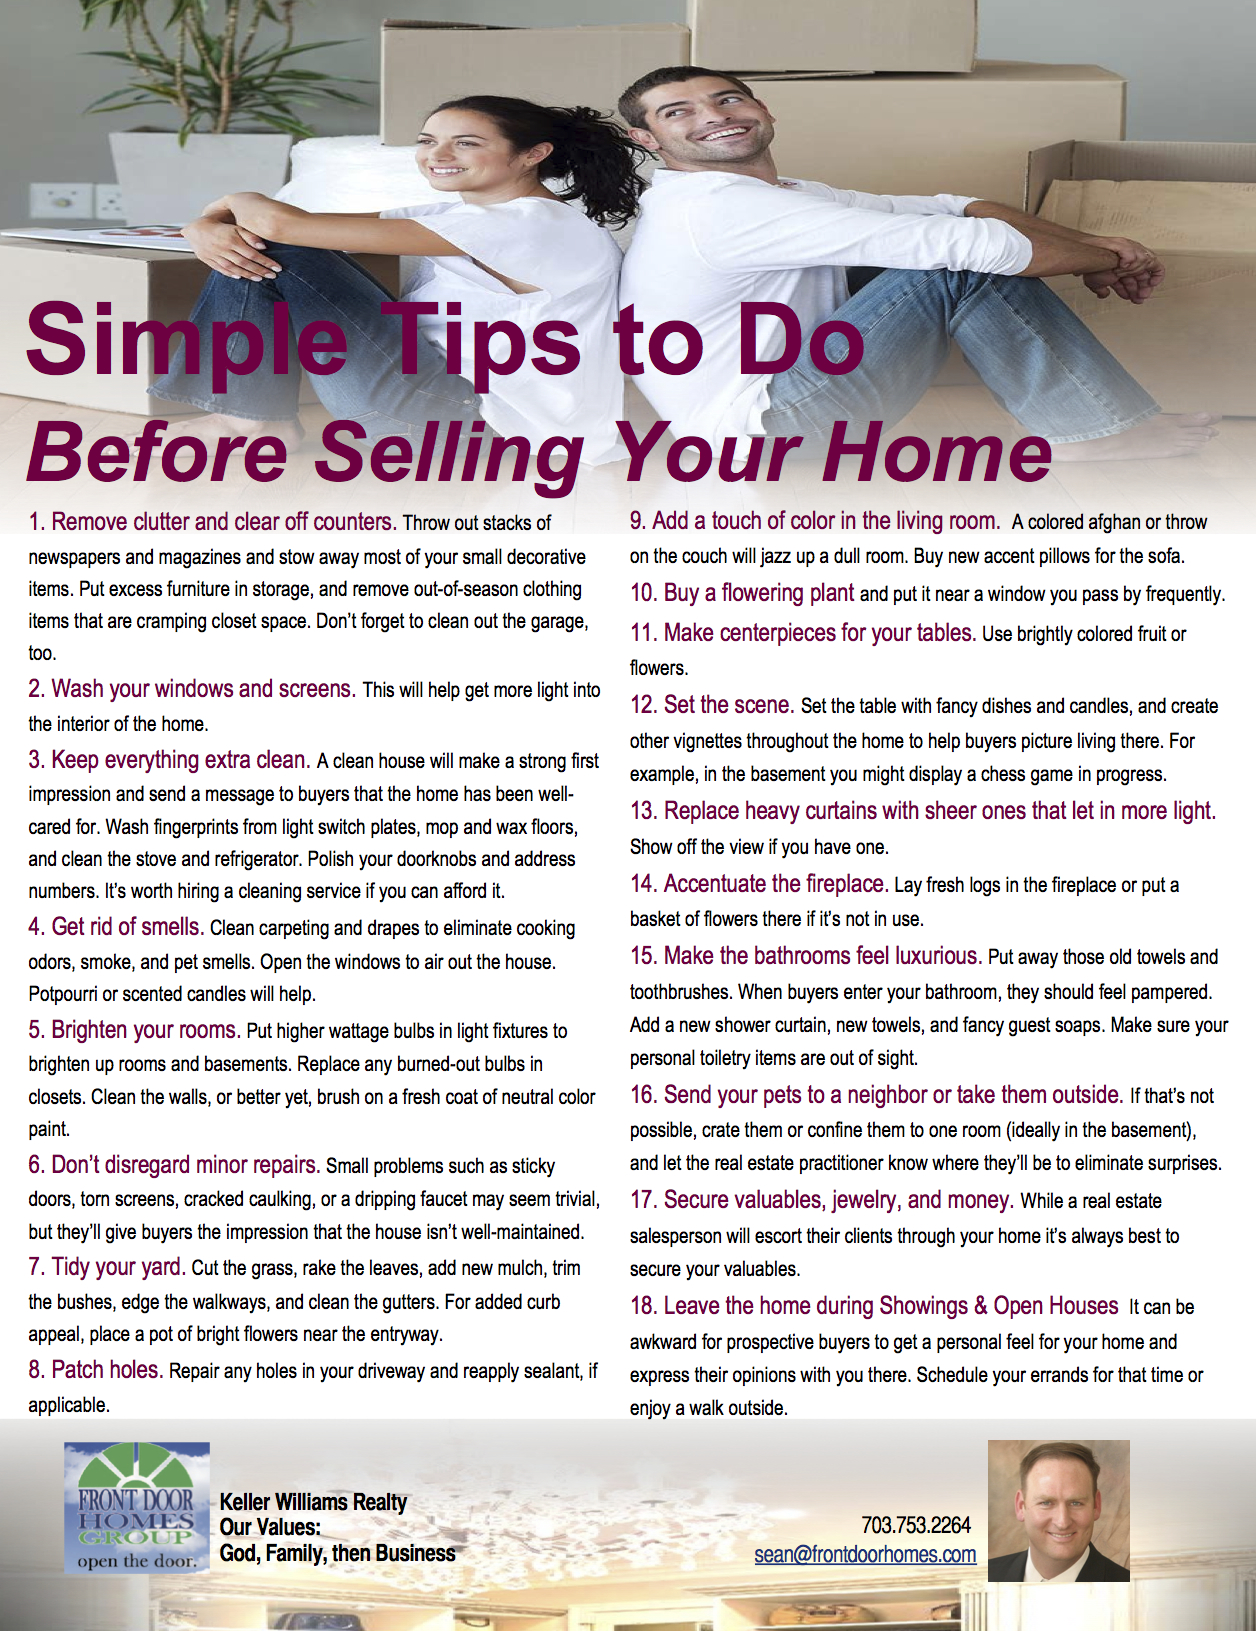 Simple Tips Before Selling Your Home